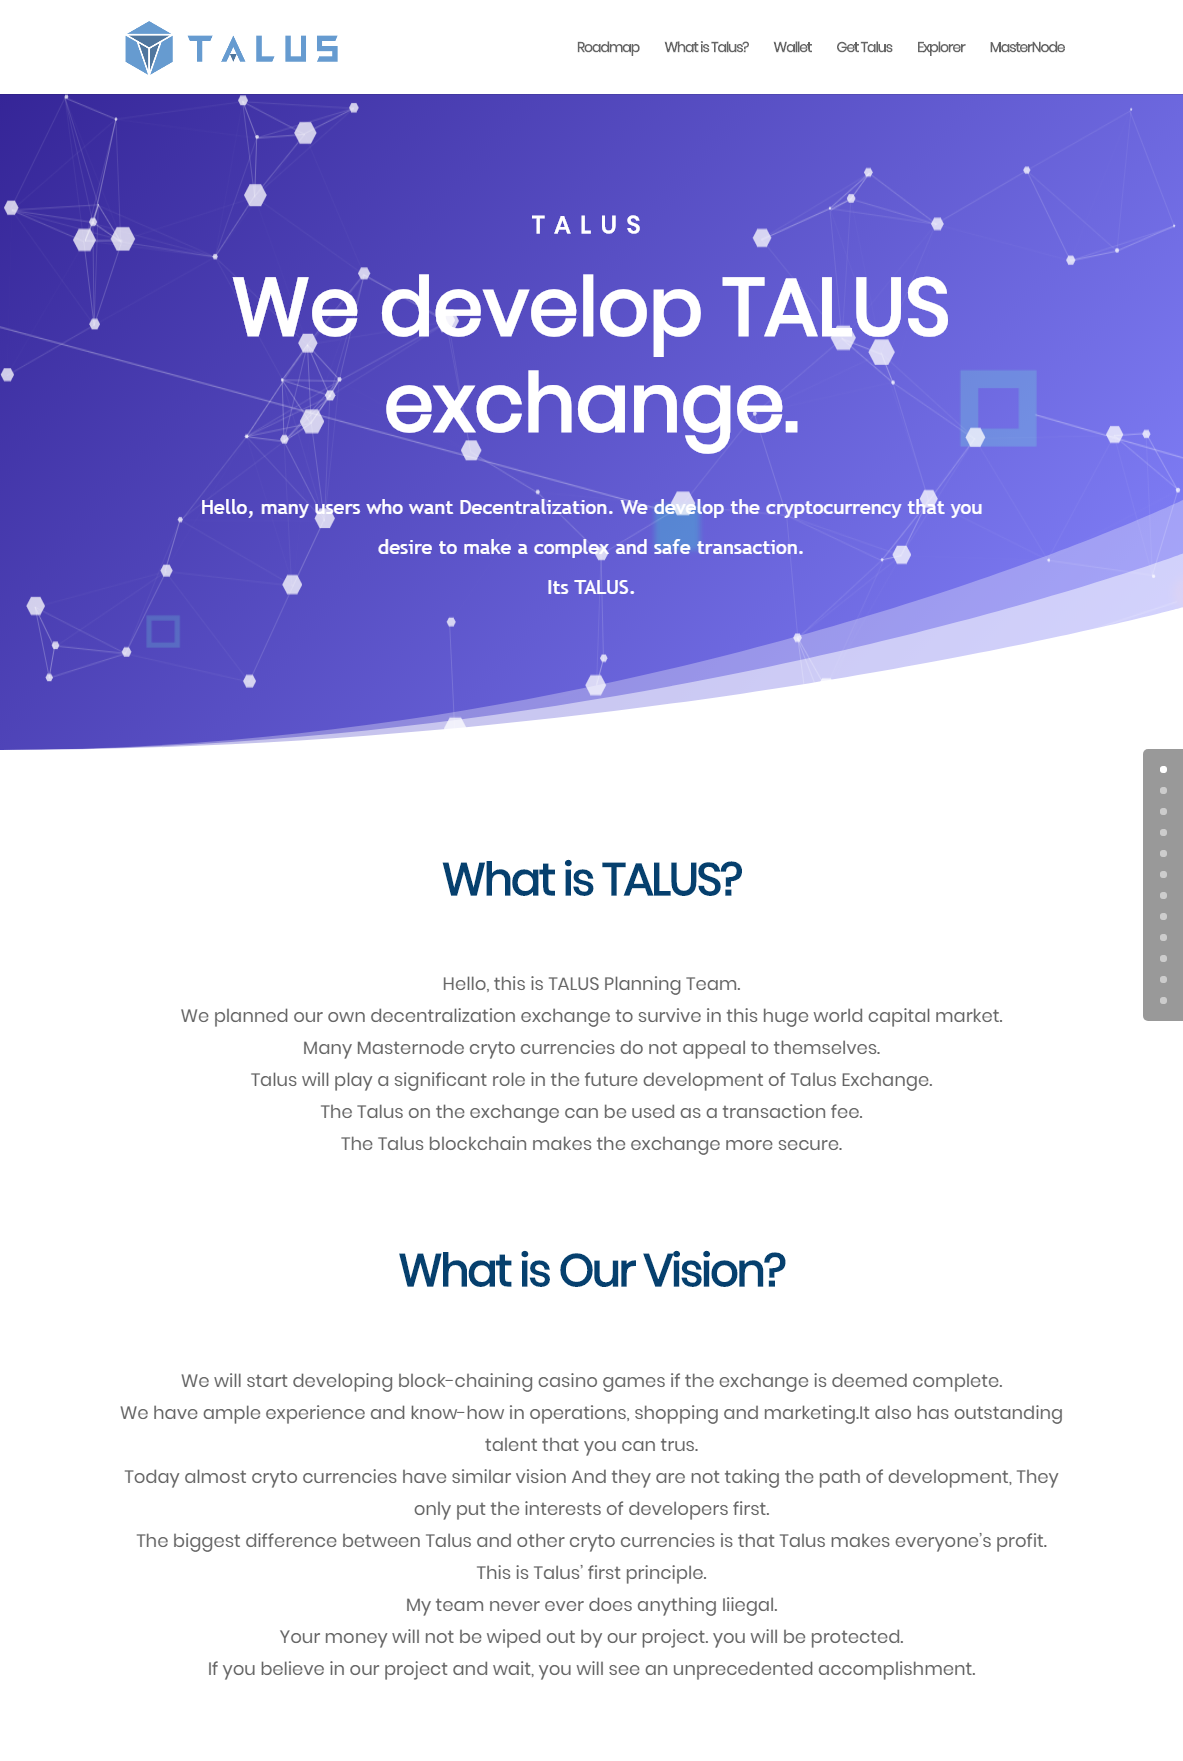 TALUS Decentralize exchange1